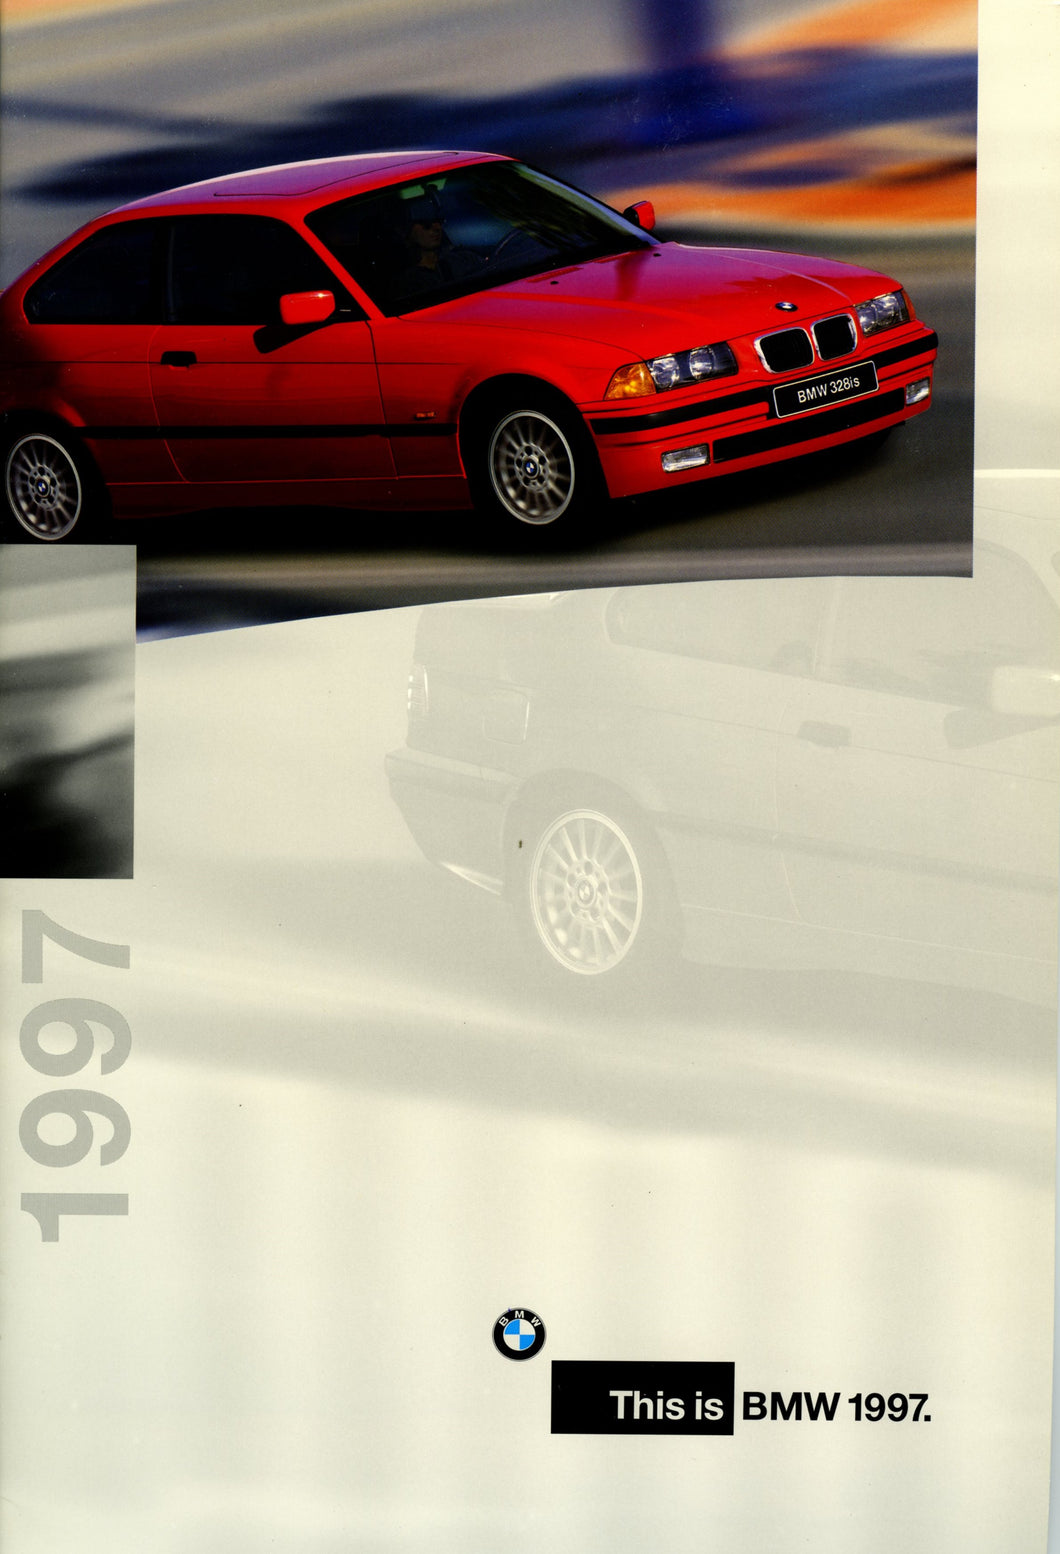 Brochure - This is BMW 1997 - Full Model Line Brochure